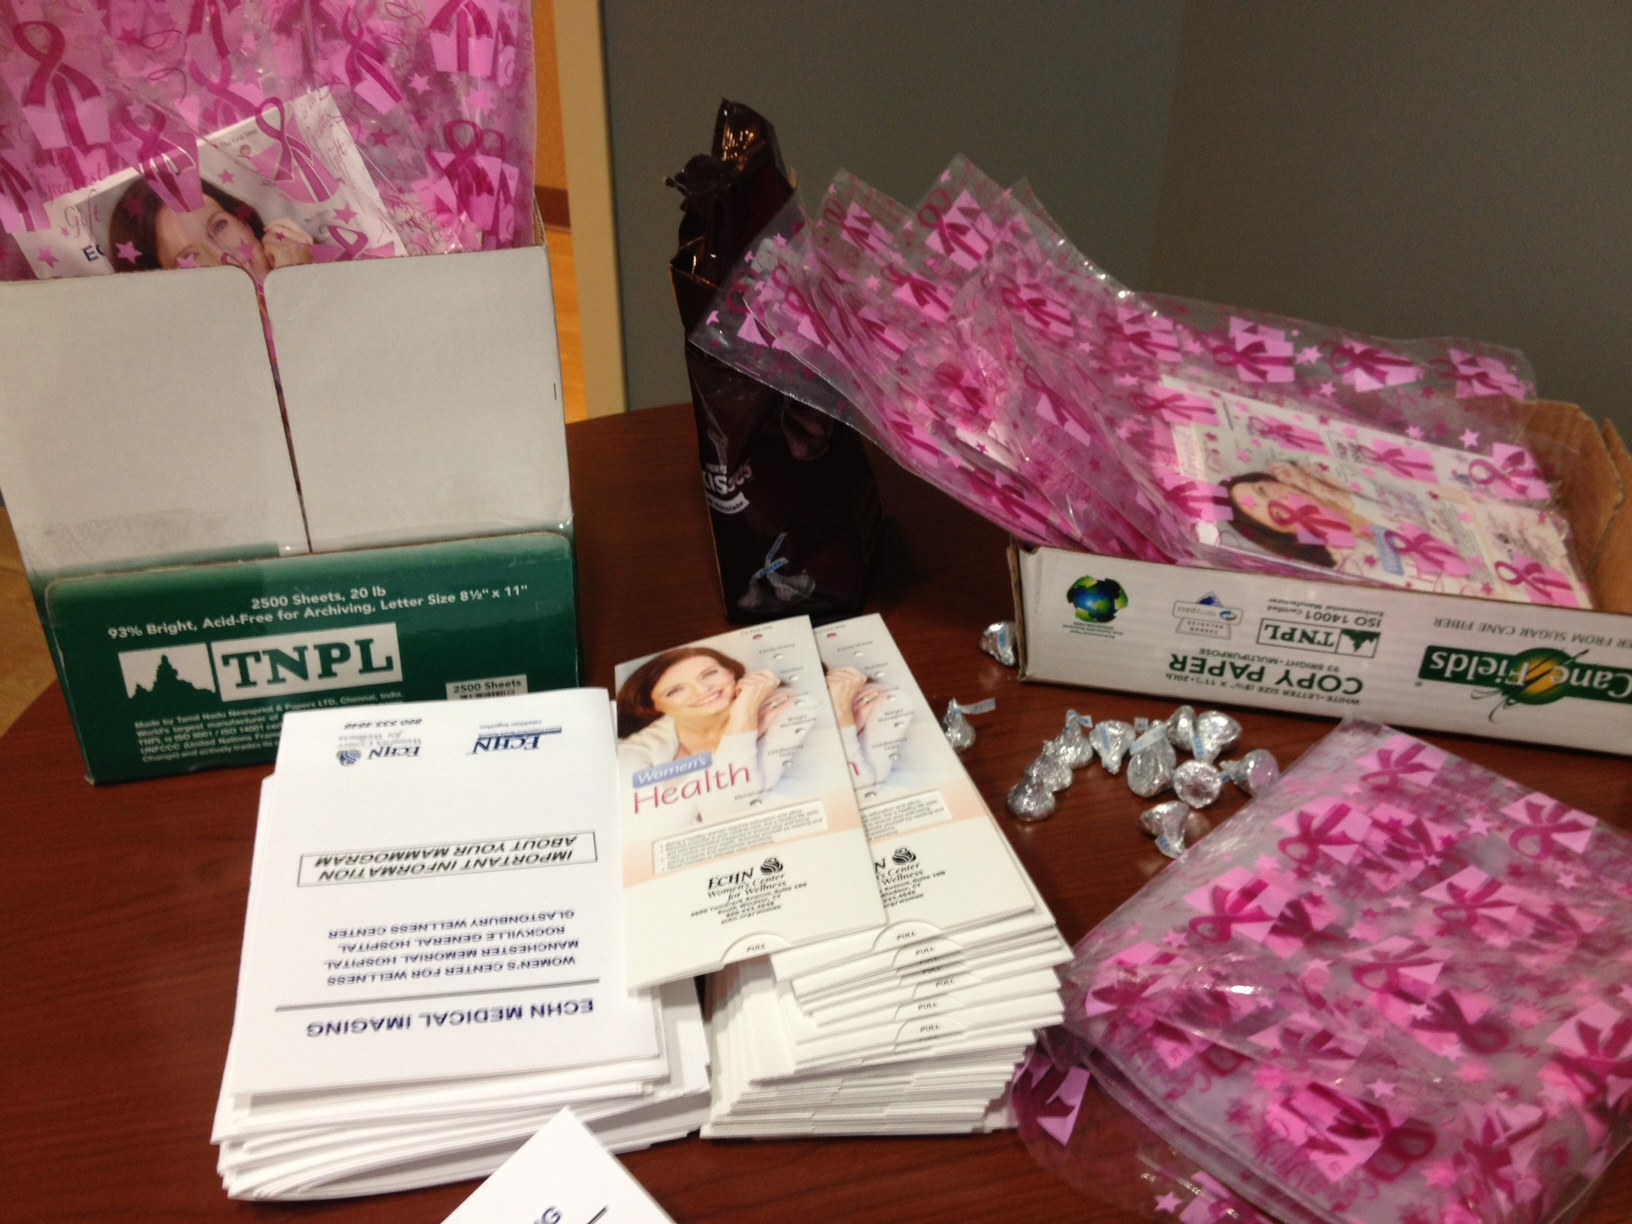 Patients get these goody bags filled with informational leaflets and chocolate after their mammogram.